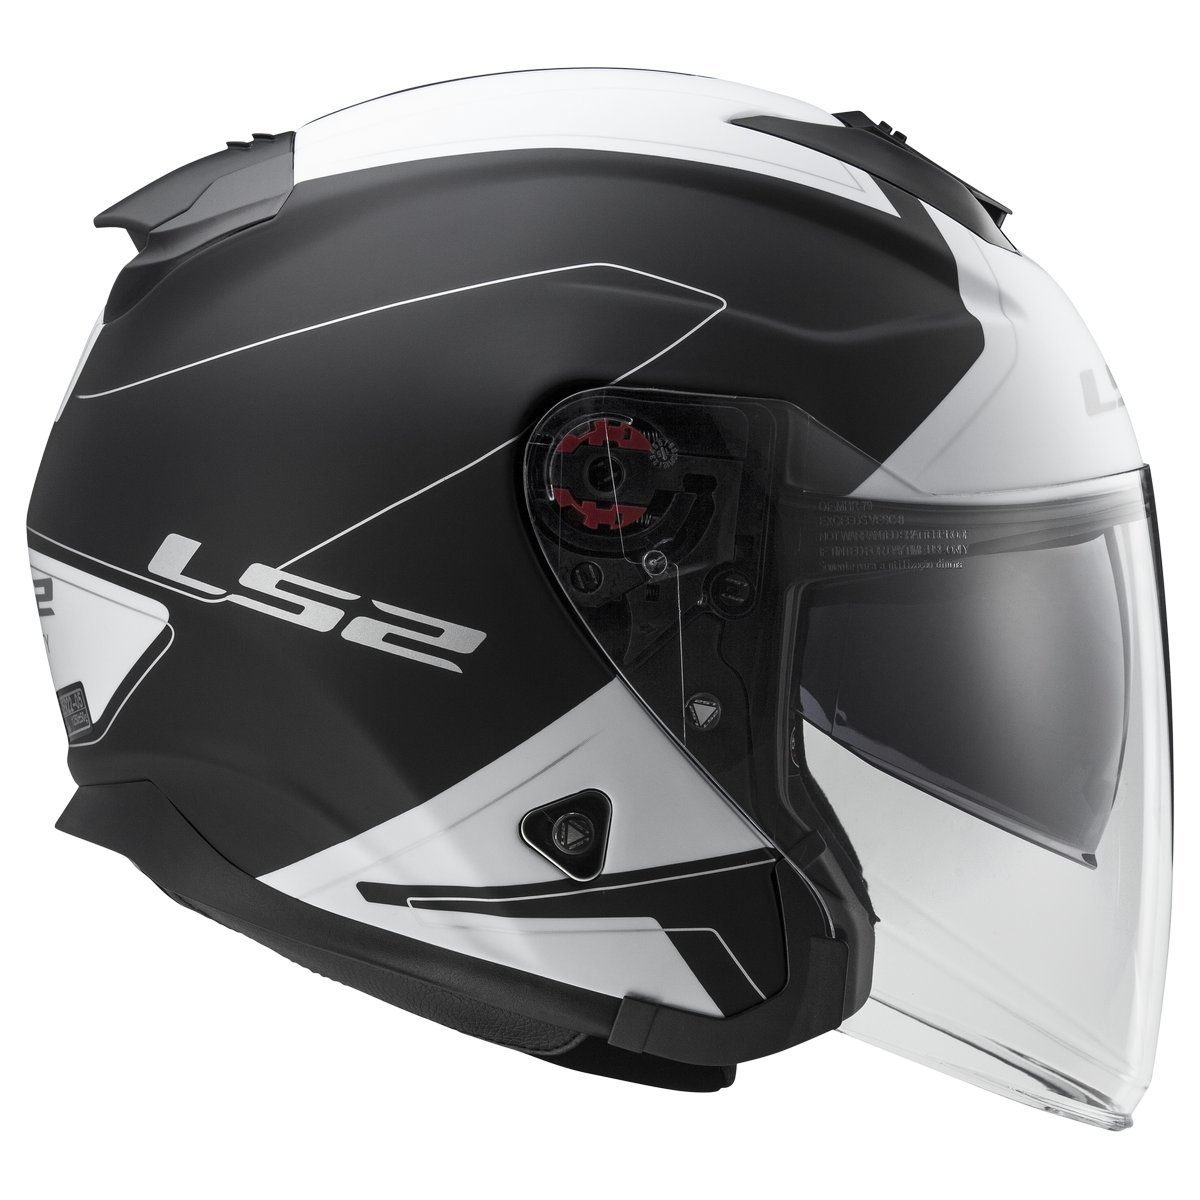 Gloss Black, Small 521-1002 LS2 Helmets Infinity Solid Open Face Motorcycle Helmet with Sunshield